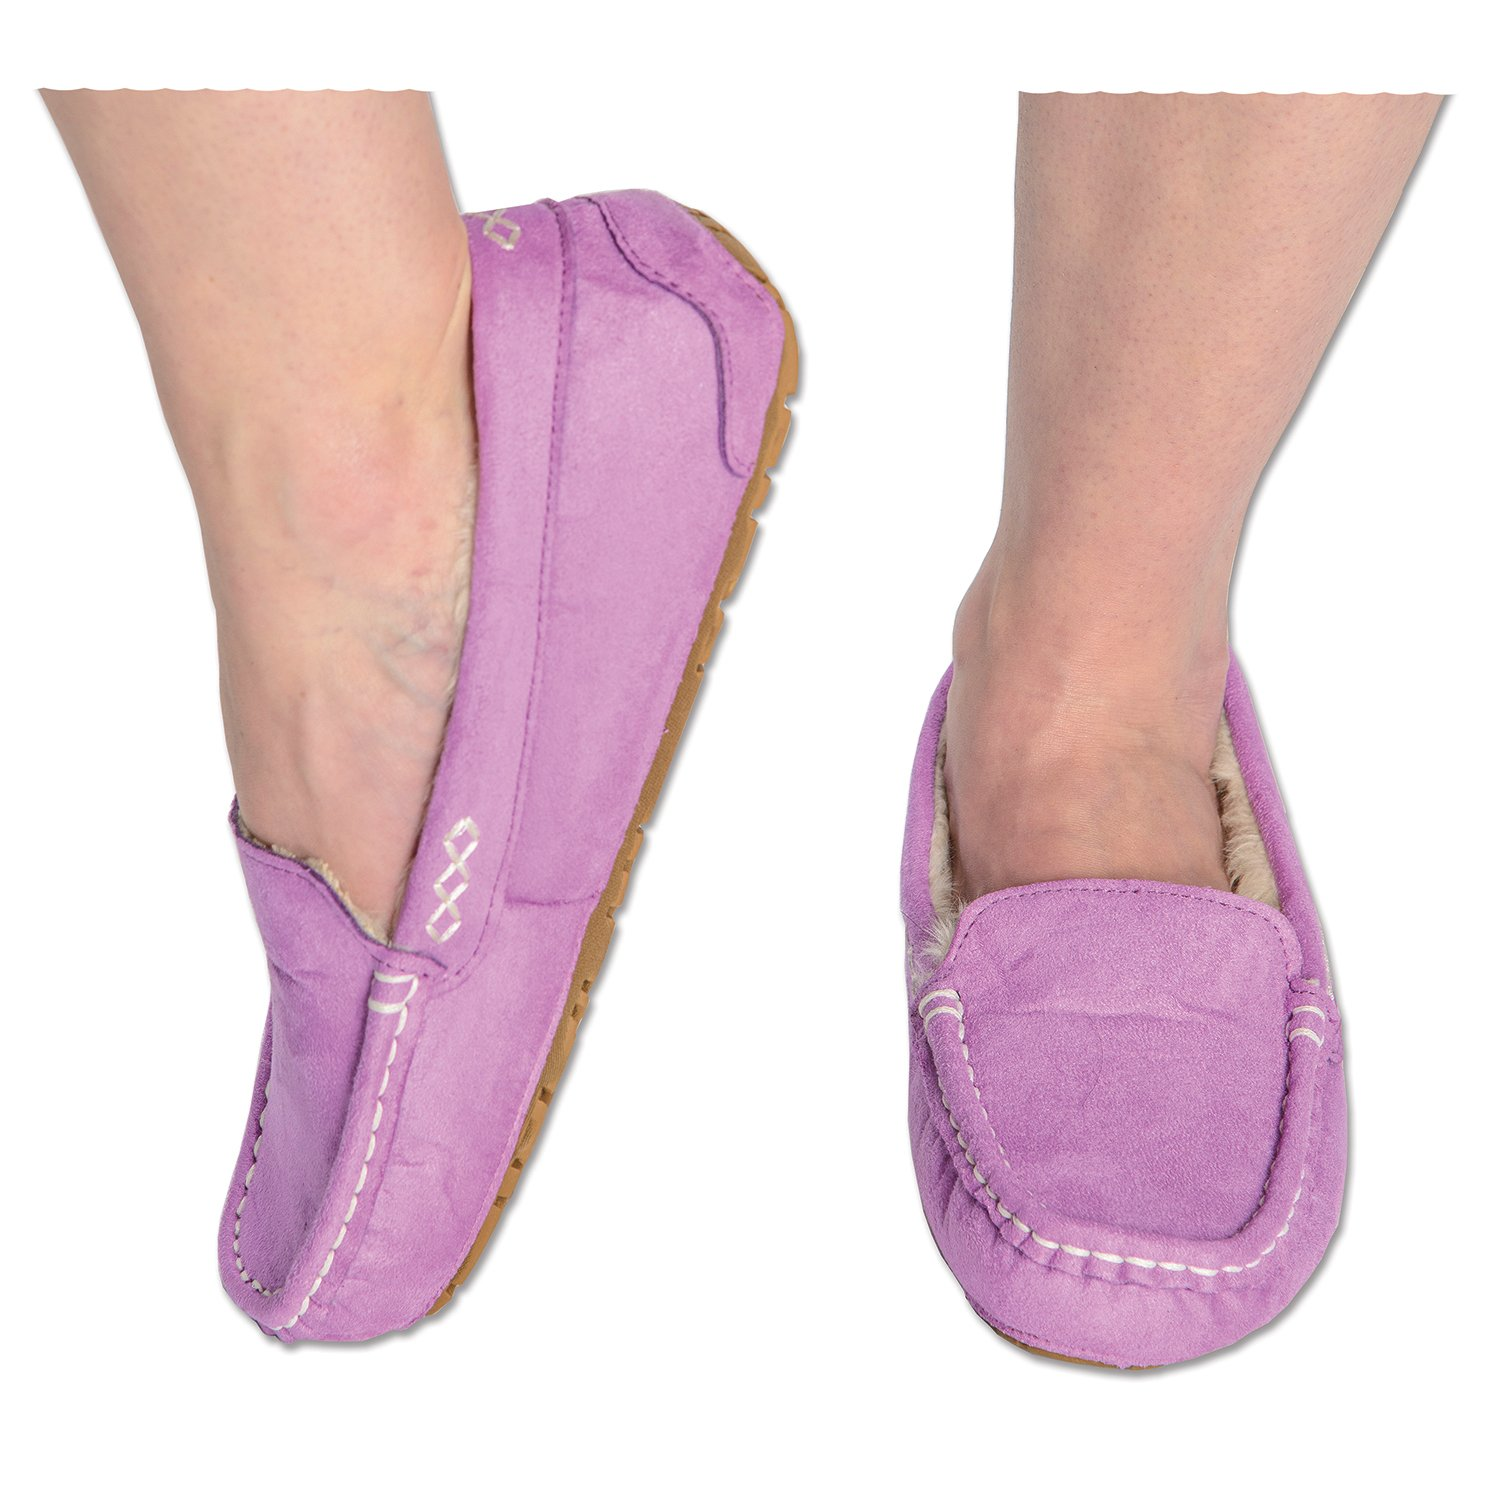 99a2b7fe878 Snoozies Womens Indoor Outdoor Sole Ultra Soft Lining Suede Moccasins  Slippers 60%OFF